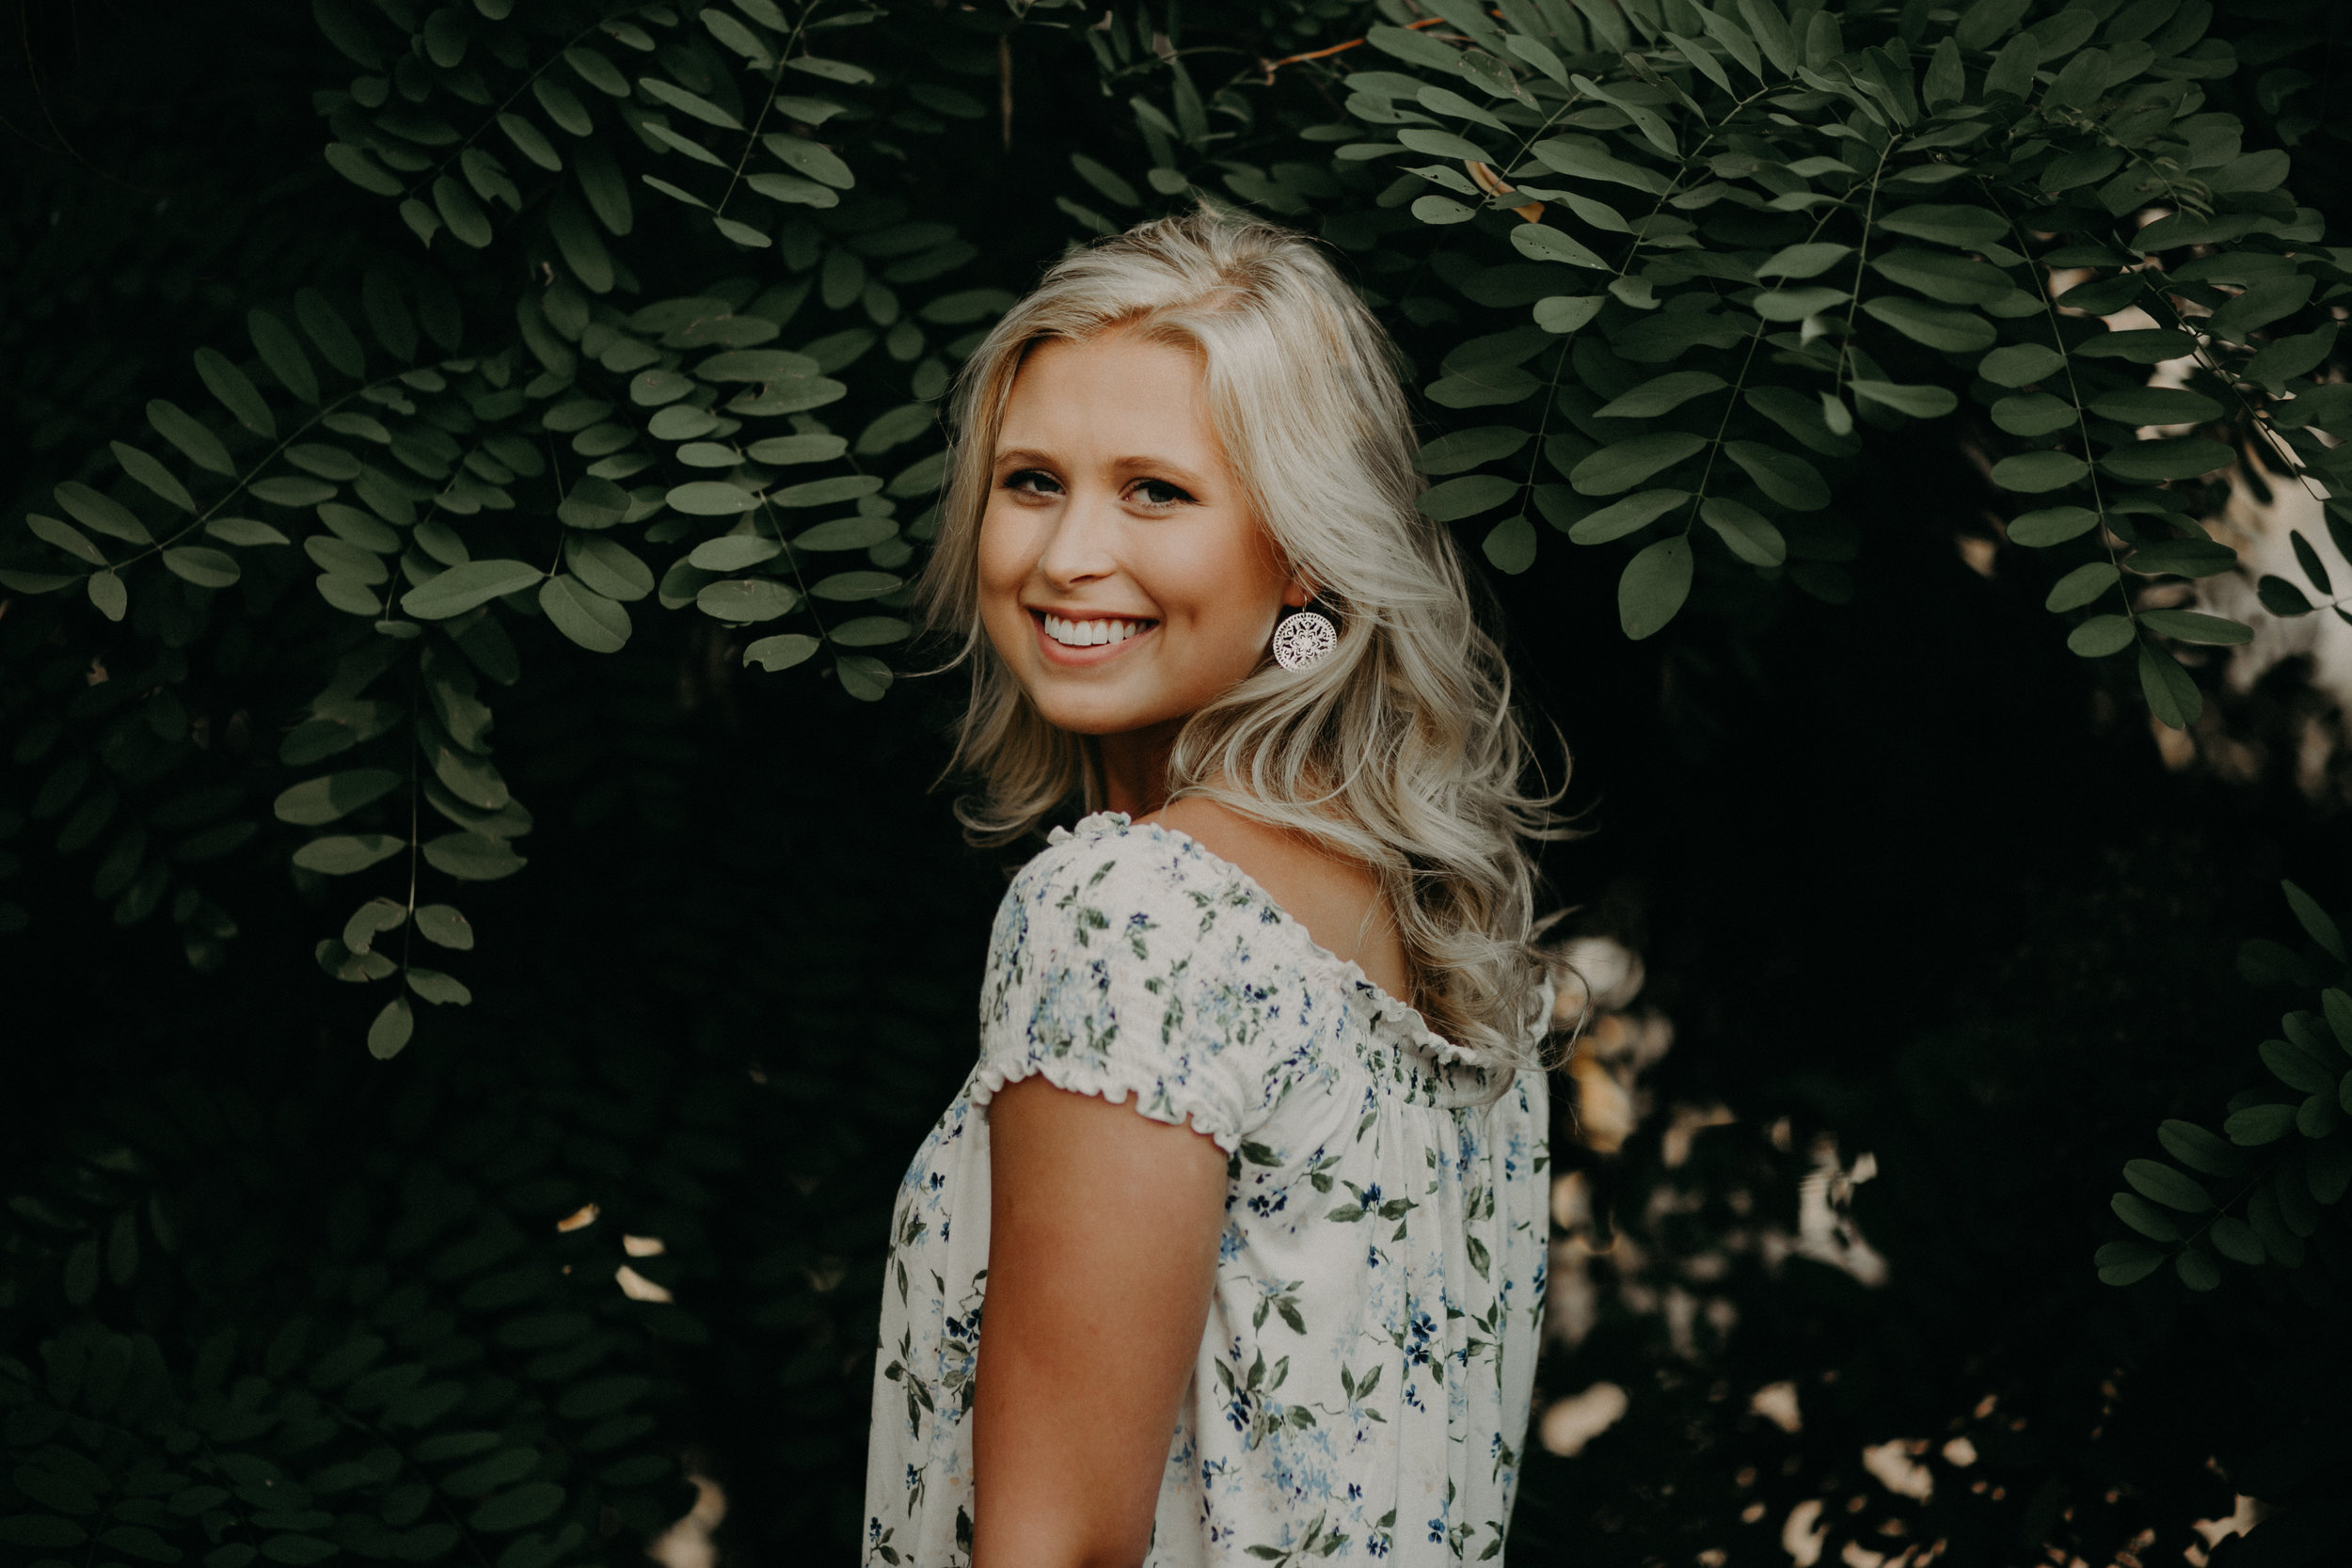 Hudson-wi-senior-photographer-blonde-leaves-tropical